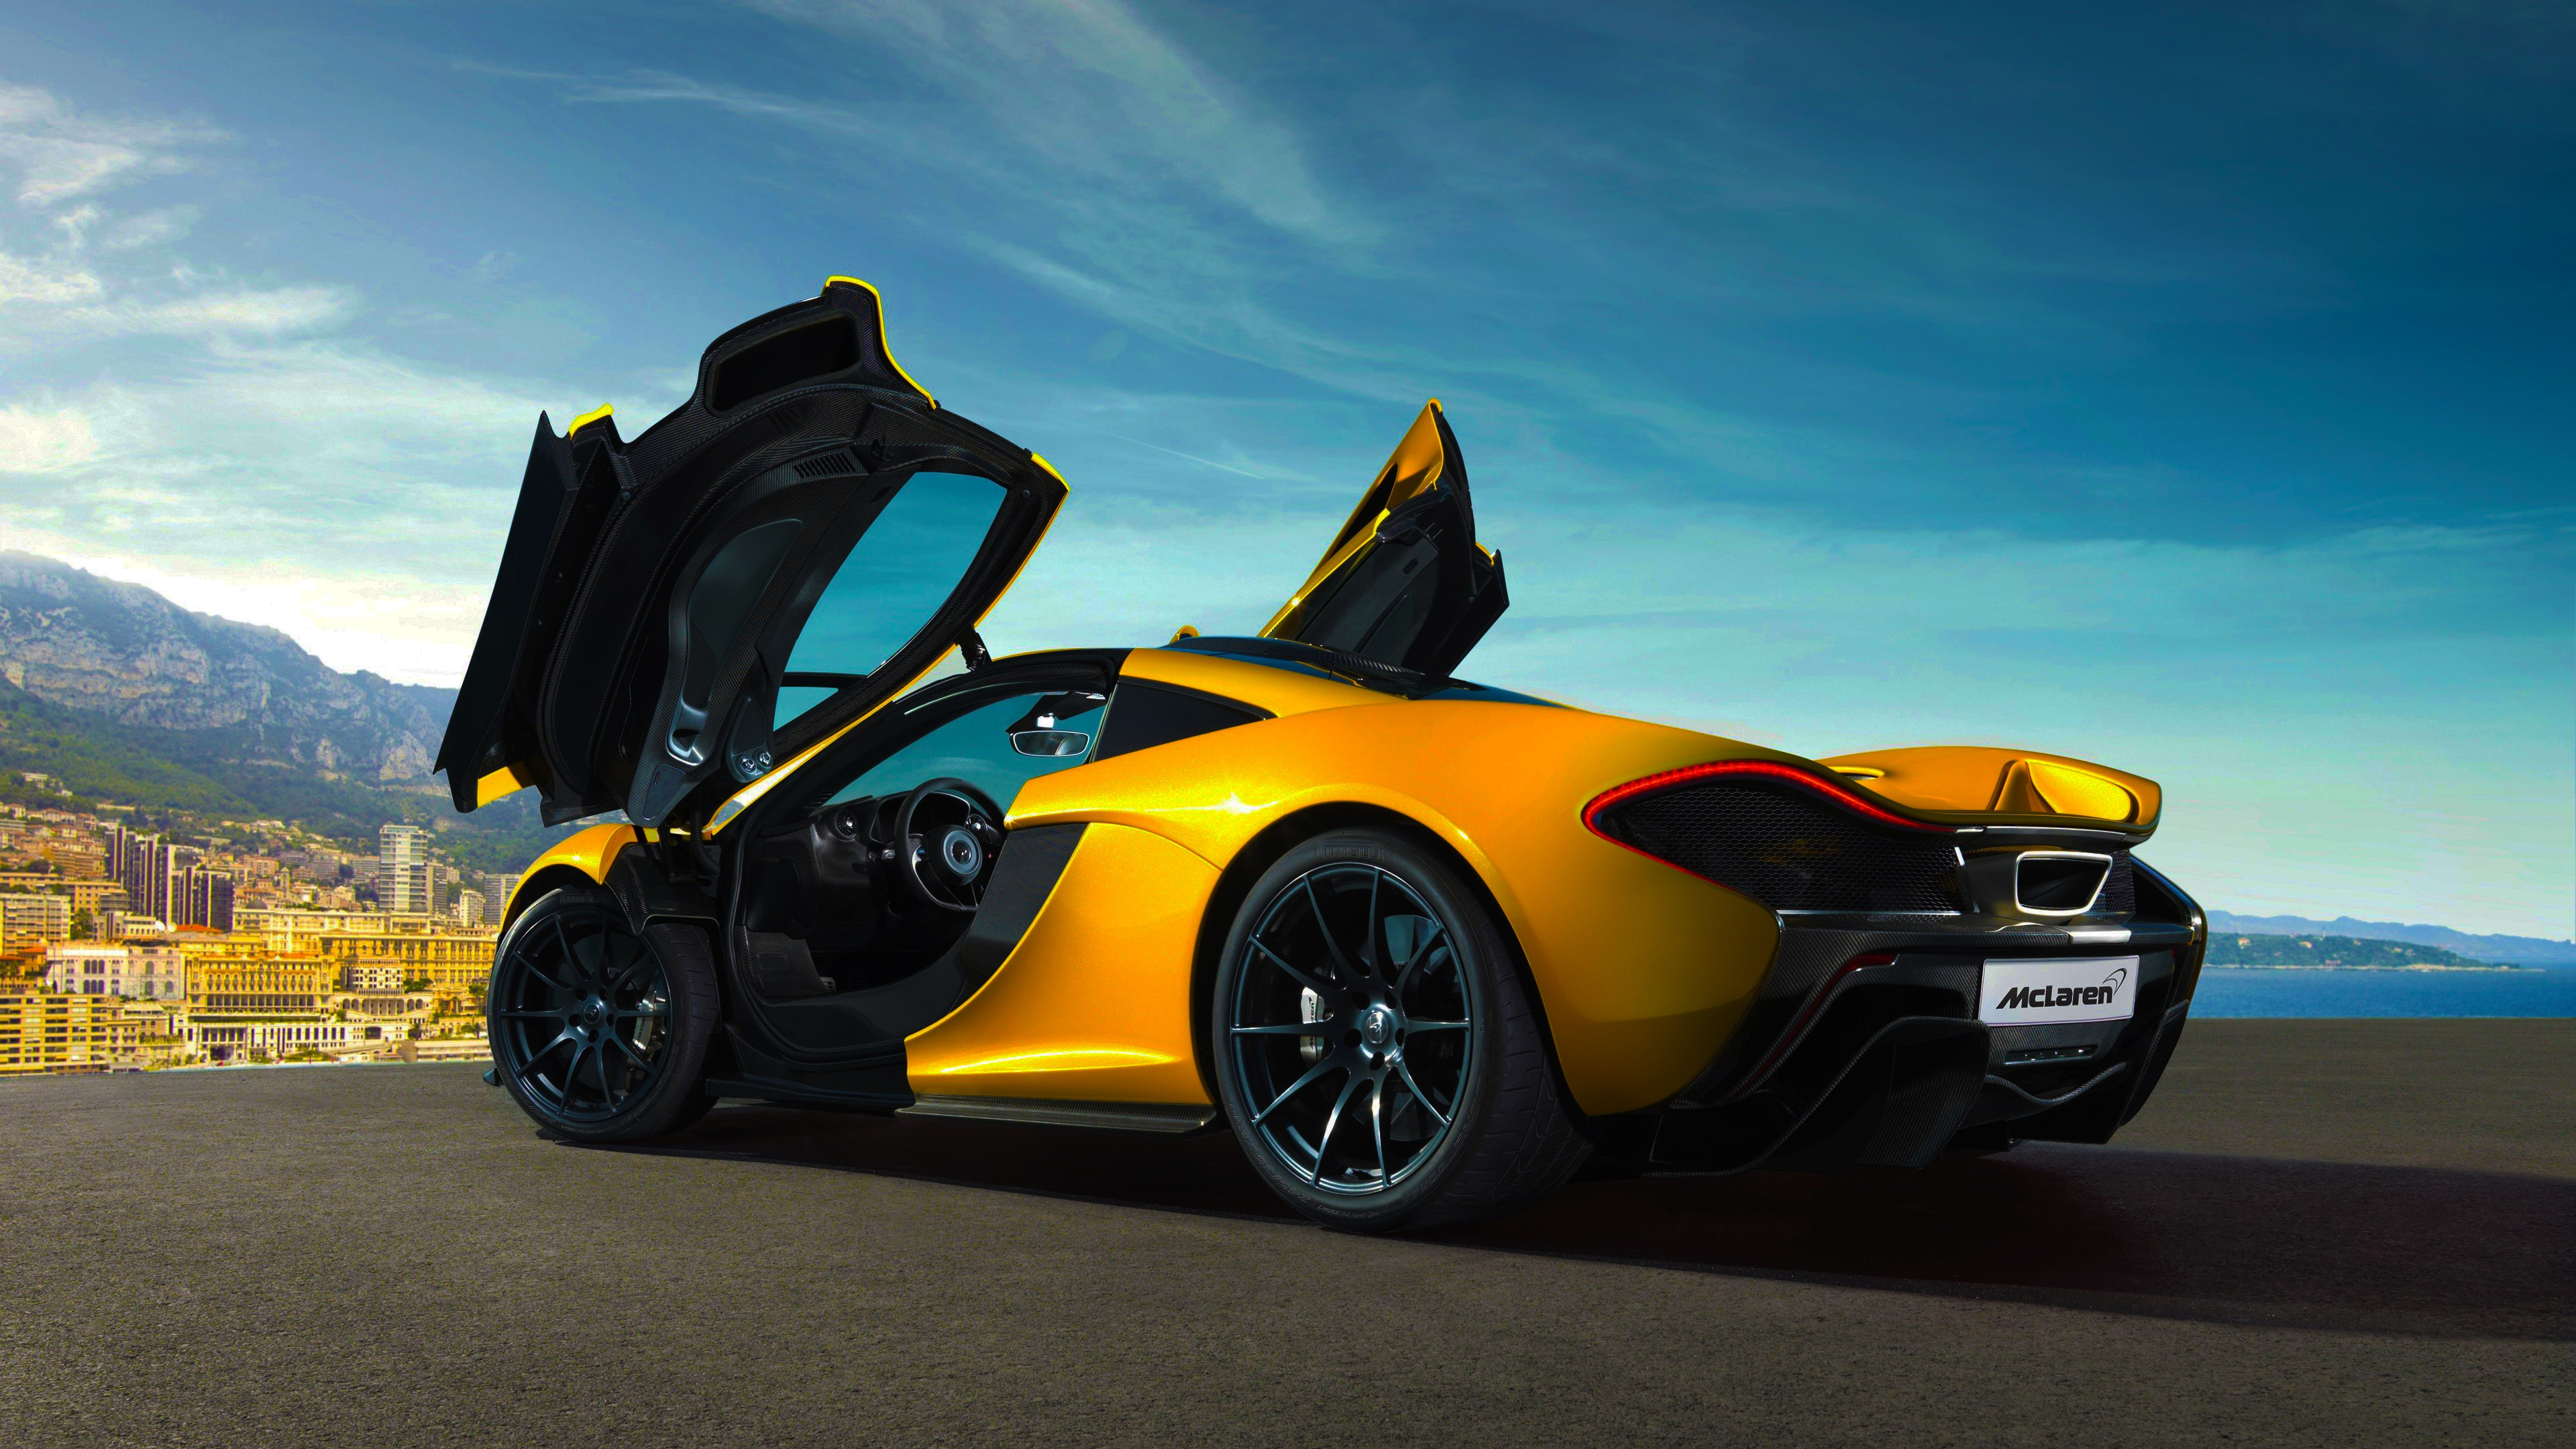 Super Car 5760x1080 Wallpaper Super Car City Yellow Blue Sky Clouds Vehicle Car